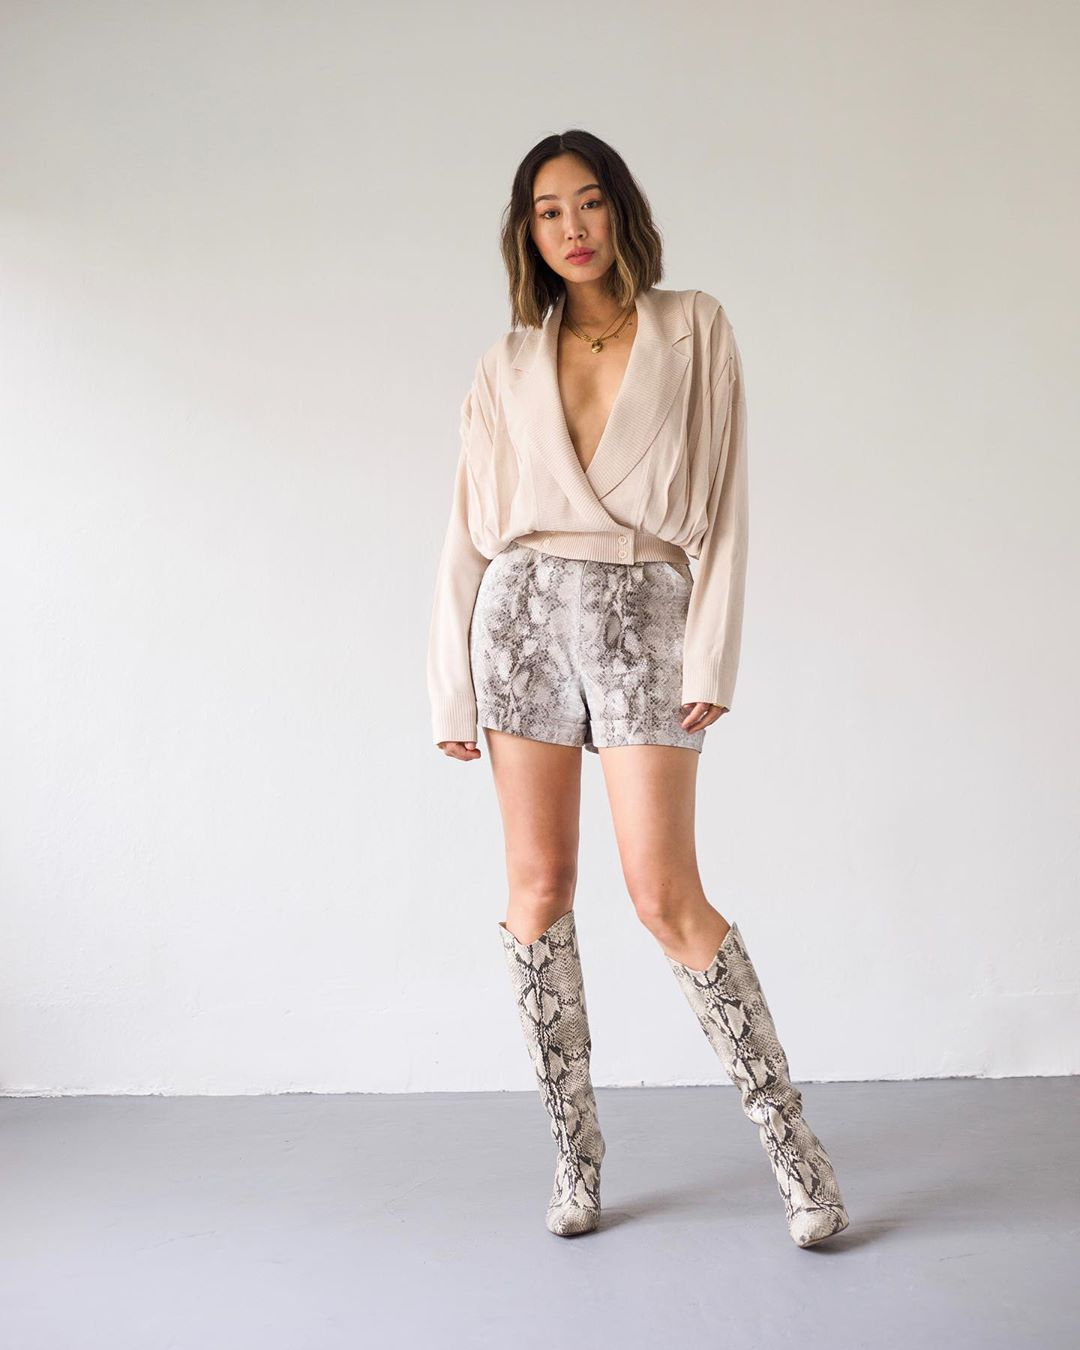 Aimee Song wearing narrow grey cream mid calf boots with high heel